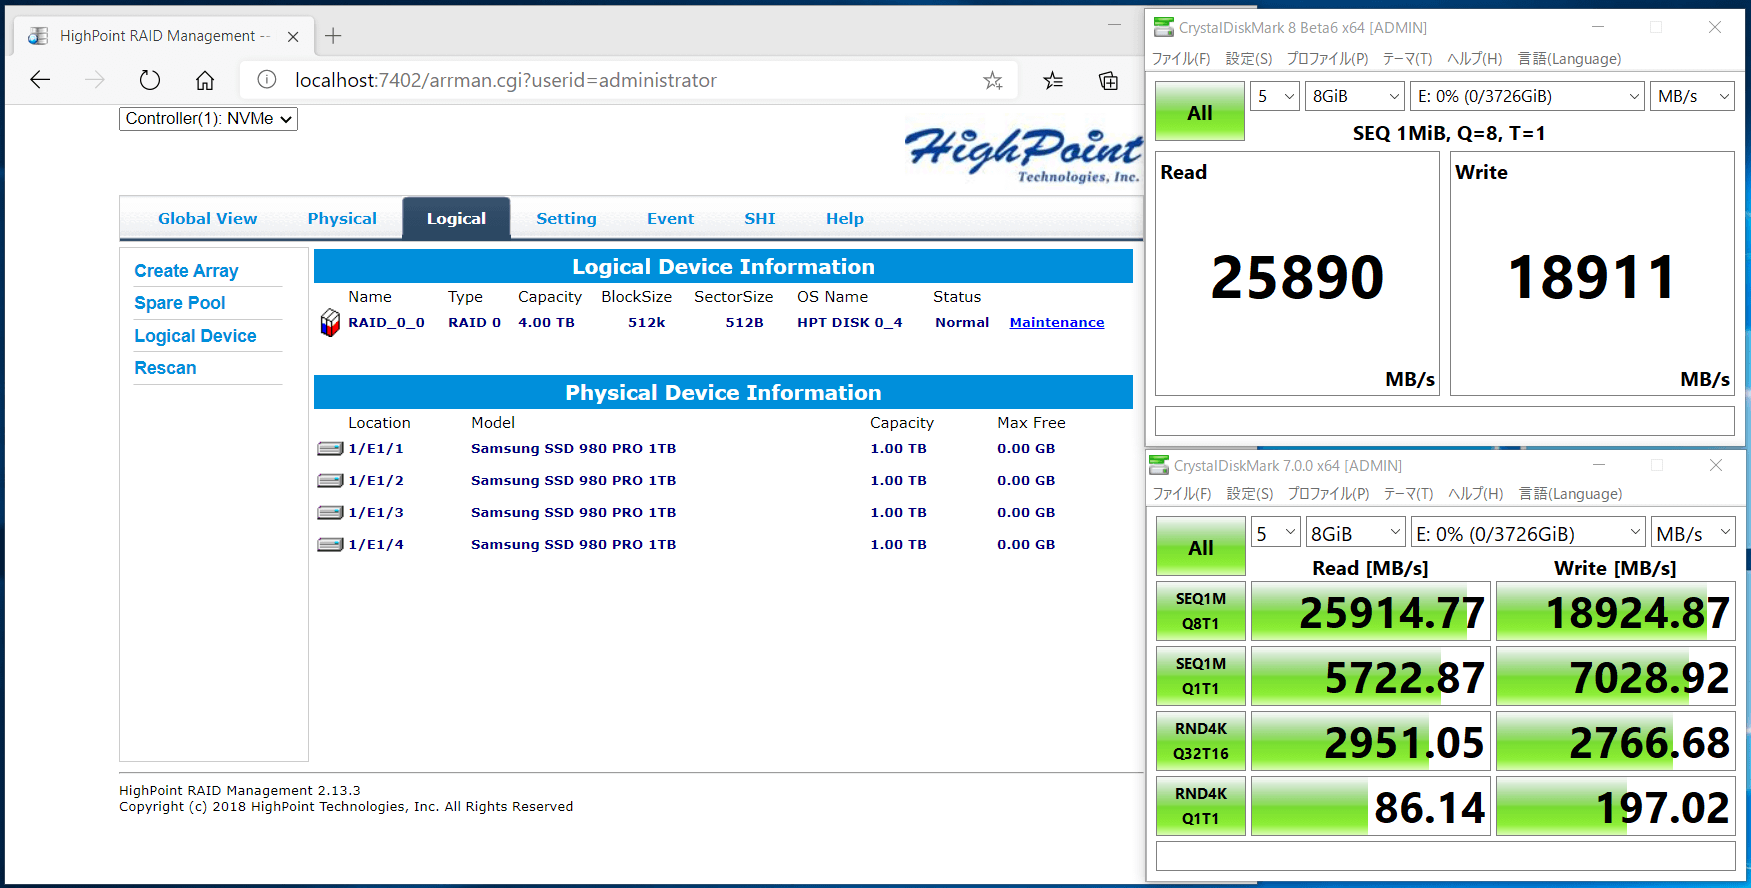 HighPoint SSD7505_PCIE_1